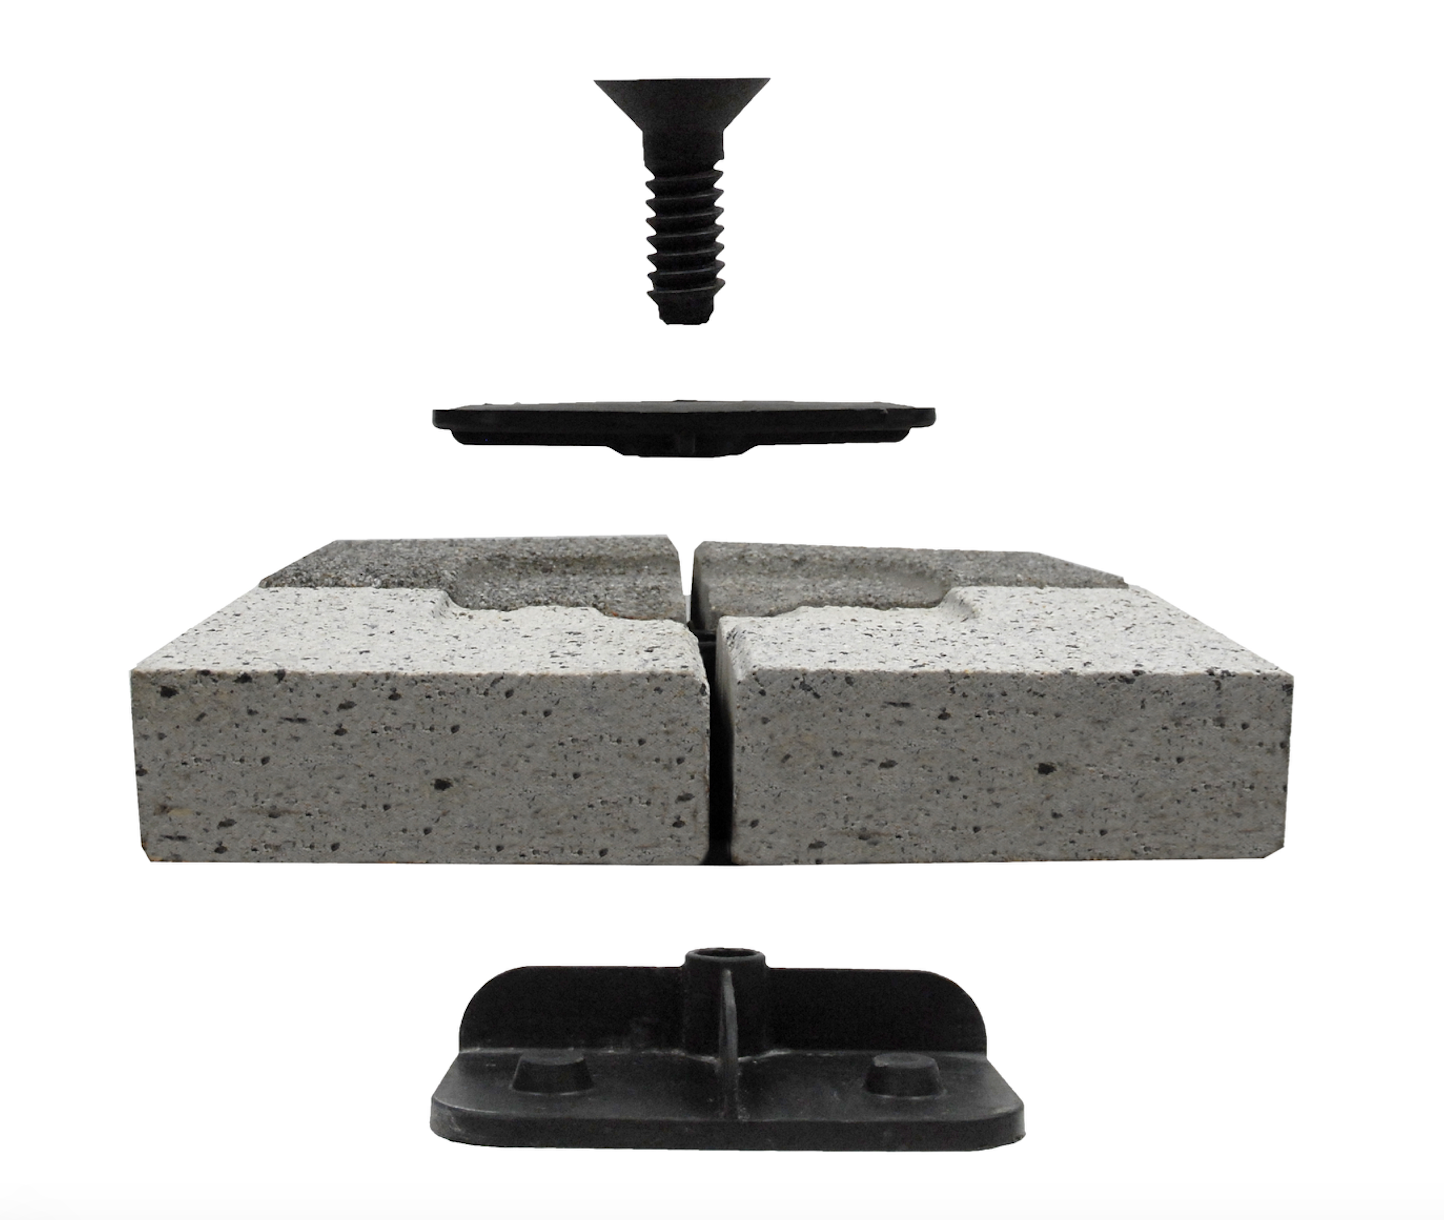 Tectura Designs' Lok Down system is a proprietary pedestal system for rooftop pavers.